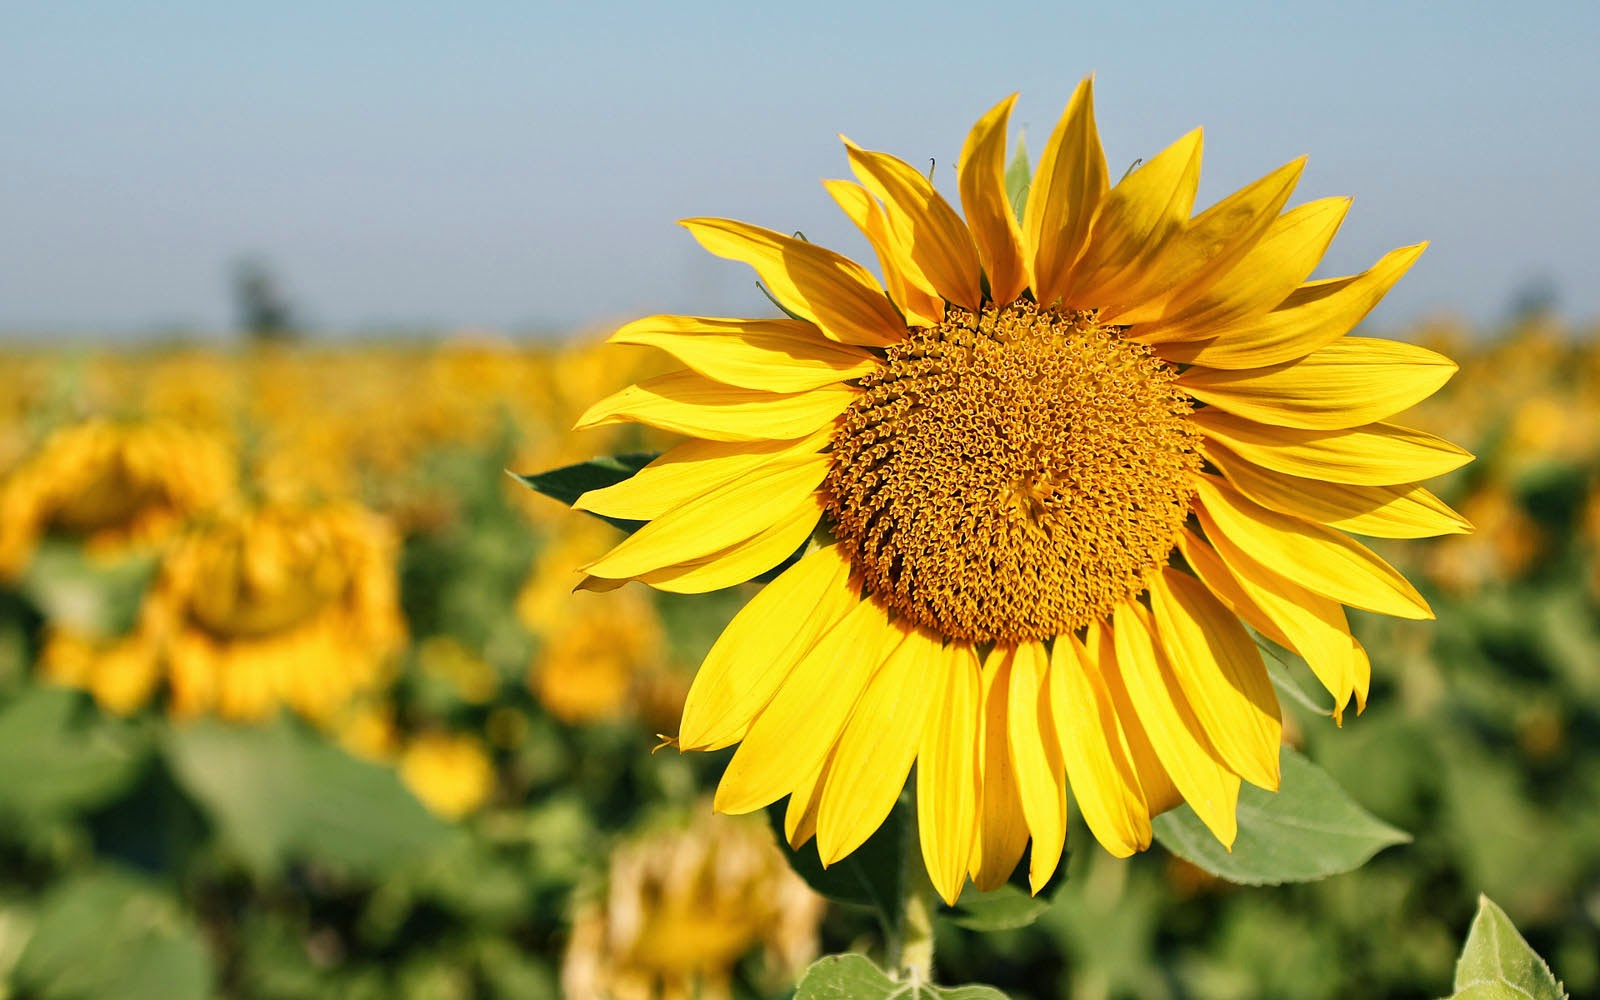 wallpapers Sunflowers Wallpapers